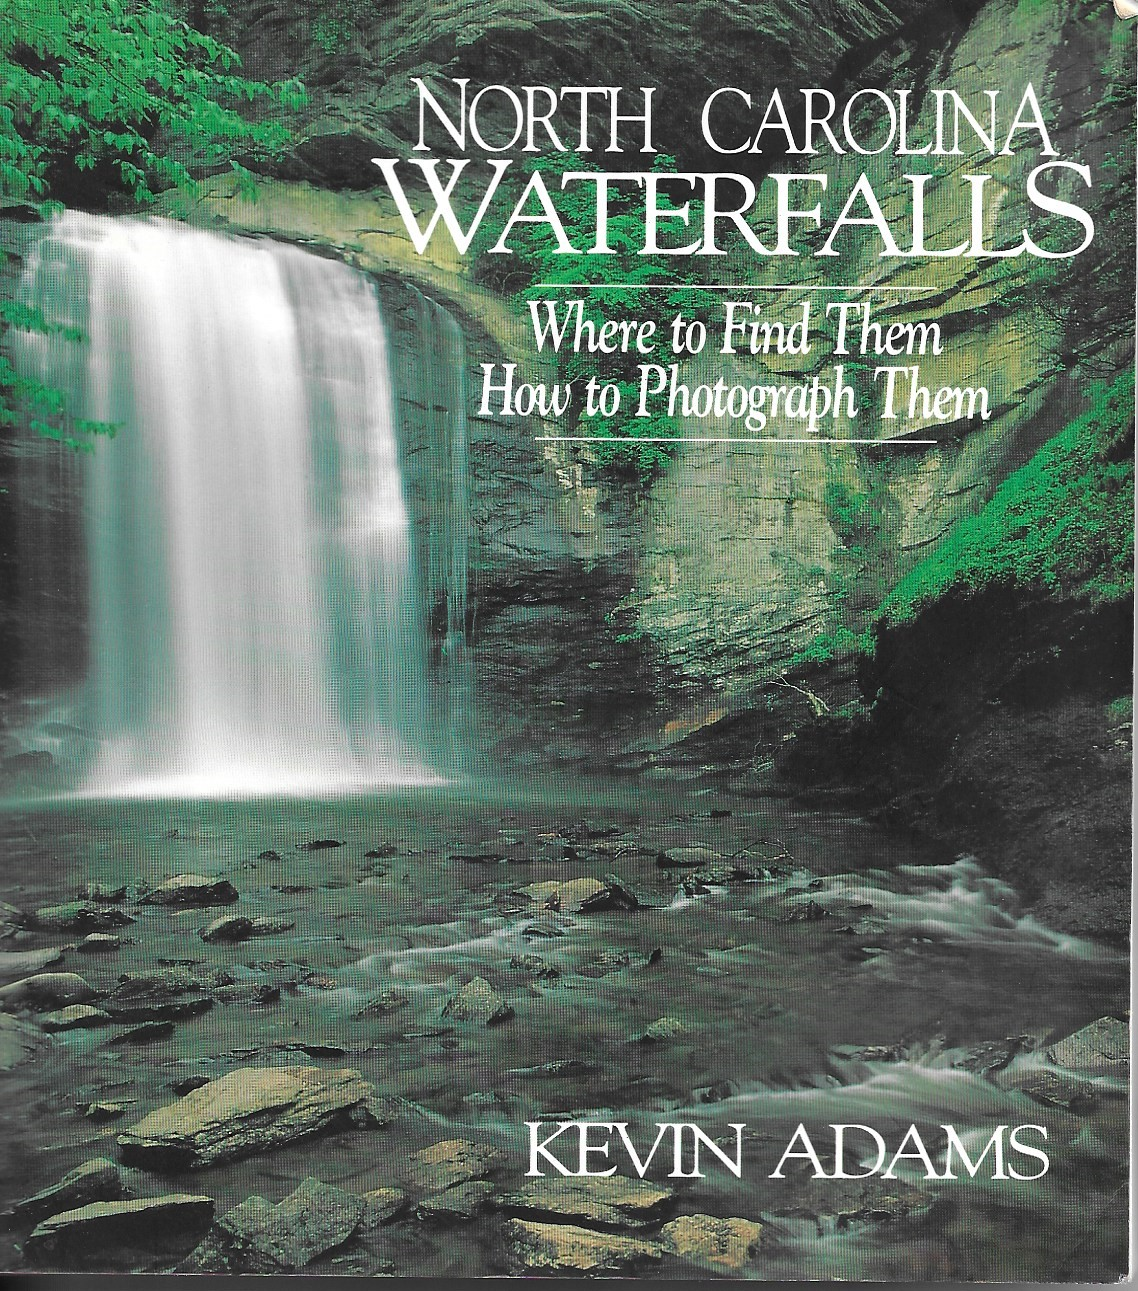 Image for North Carolina Waterfalls: Where to Find Them, How to Photograph Them